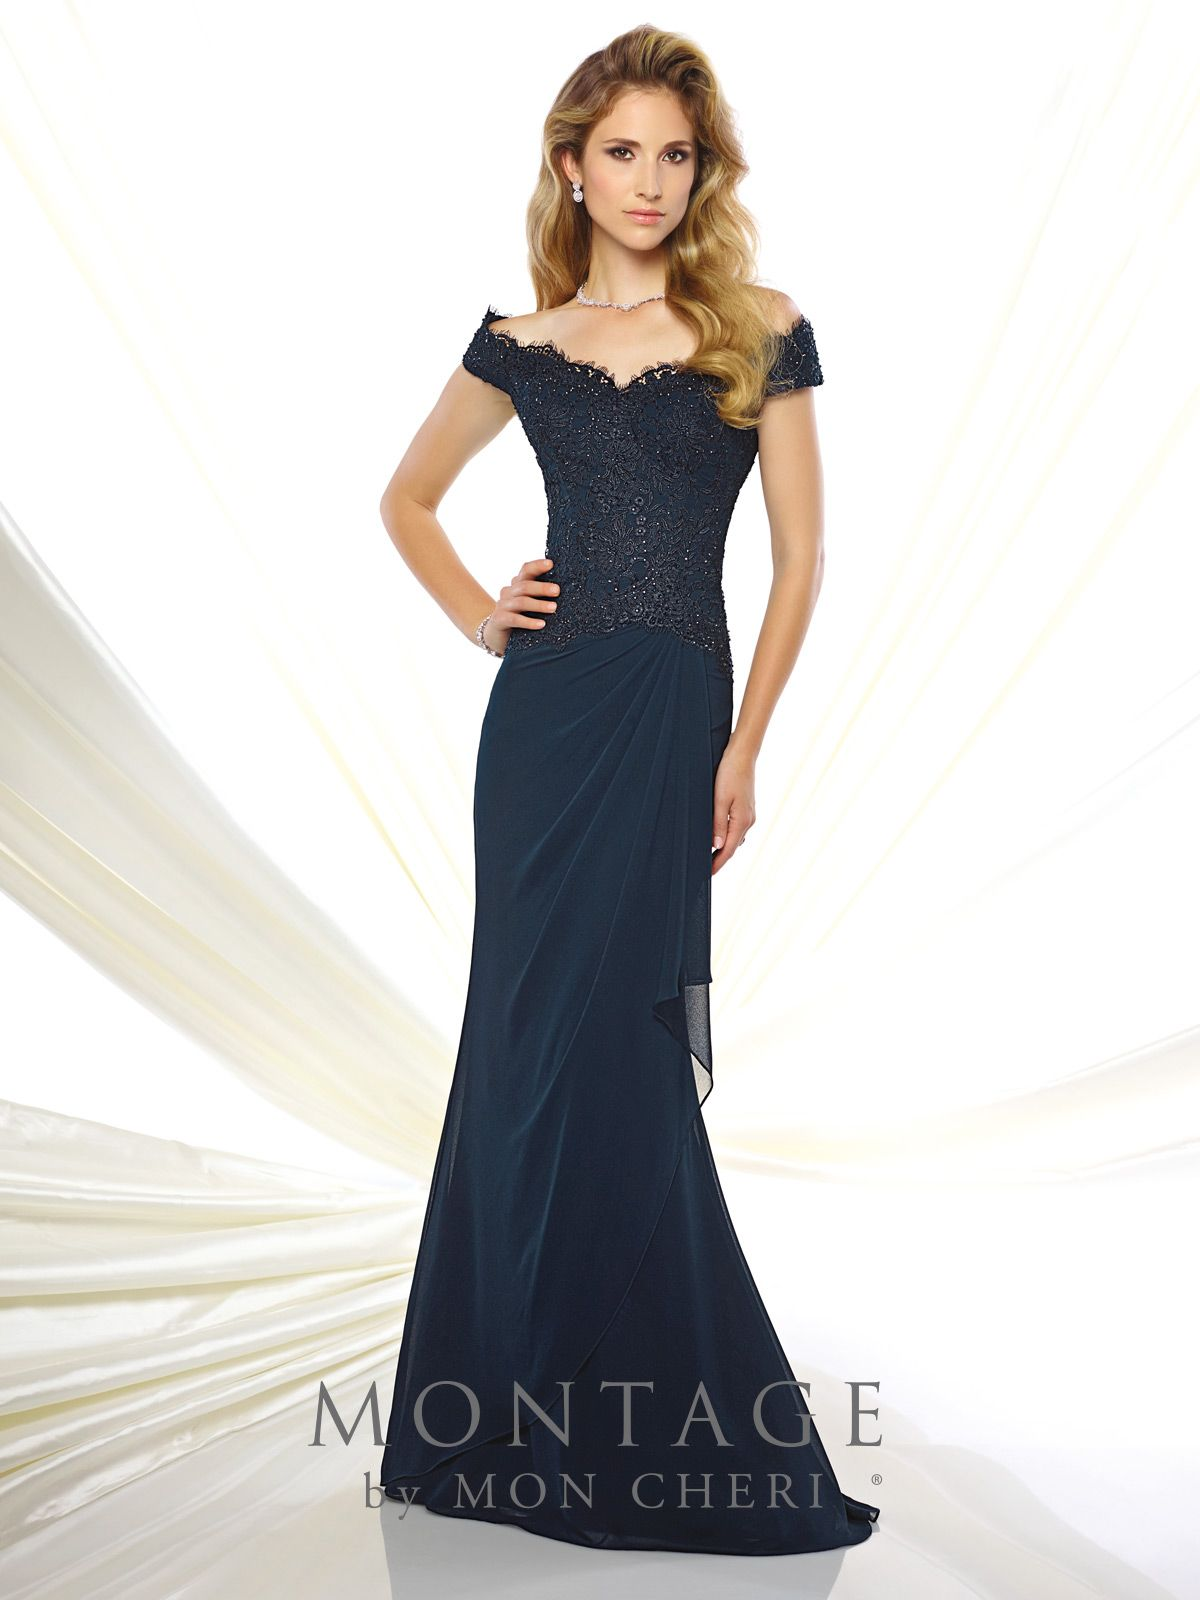 d723fc7752 Montage By Mon Cheri 116937 - Off-the-shoulder chiffon and lace fit and  flare gown